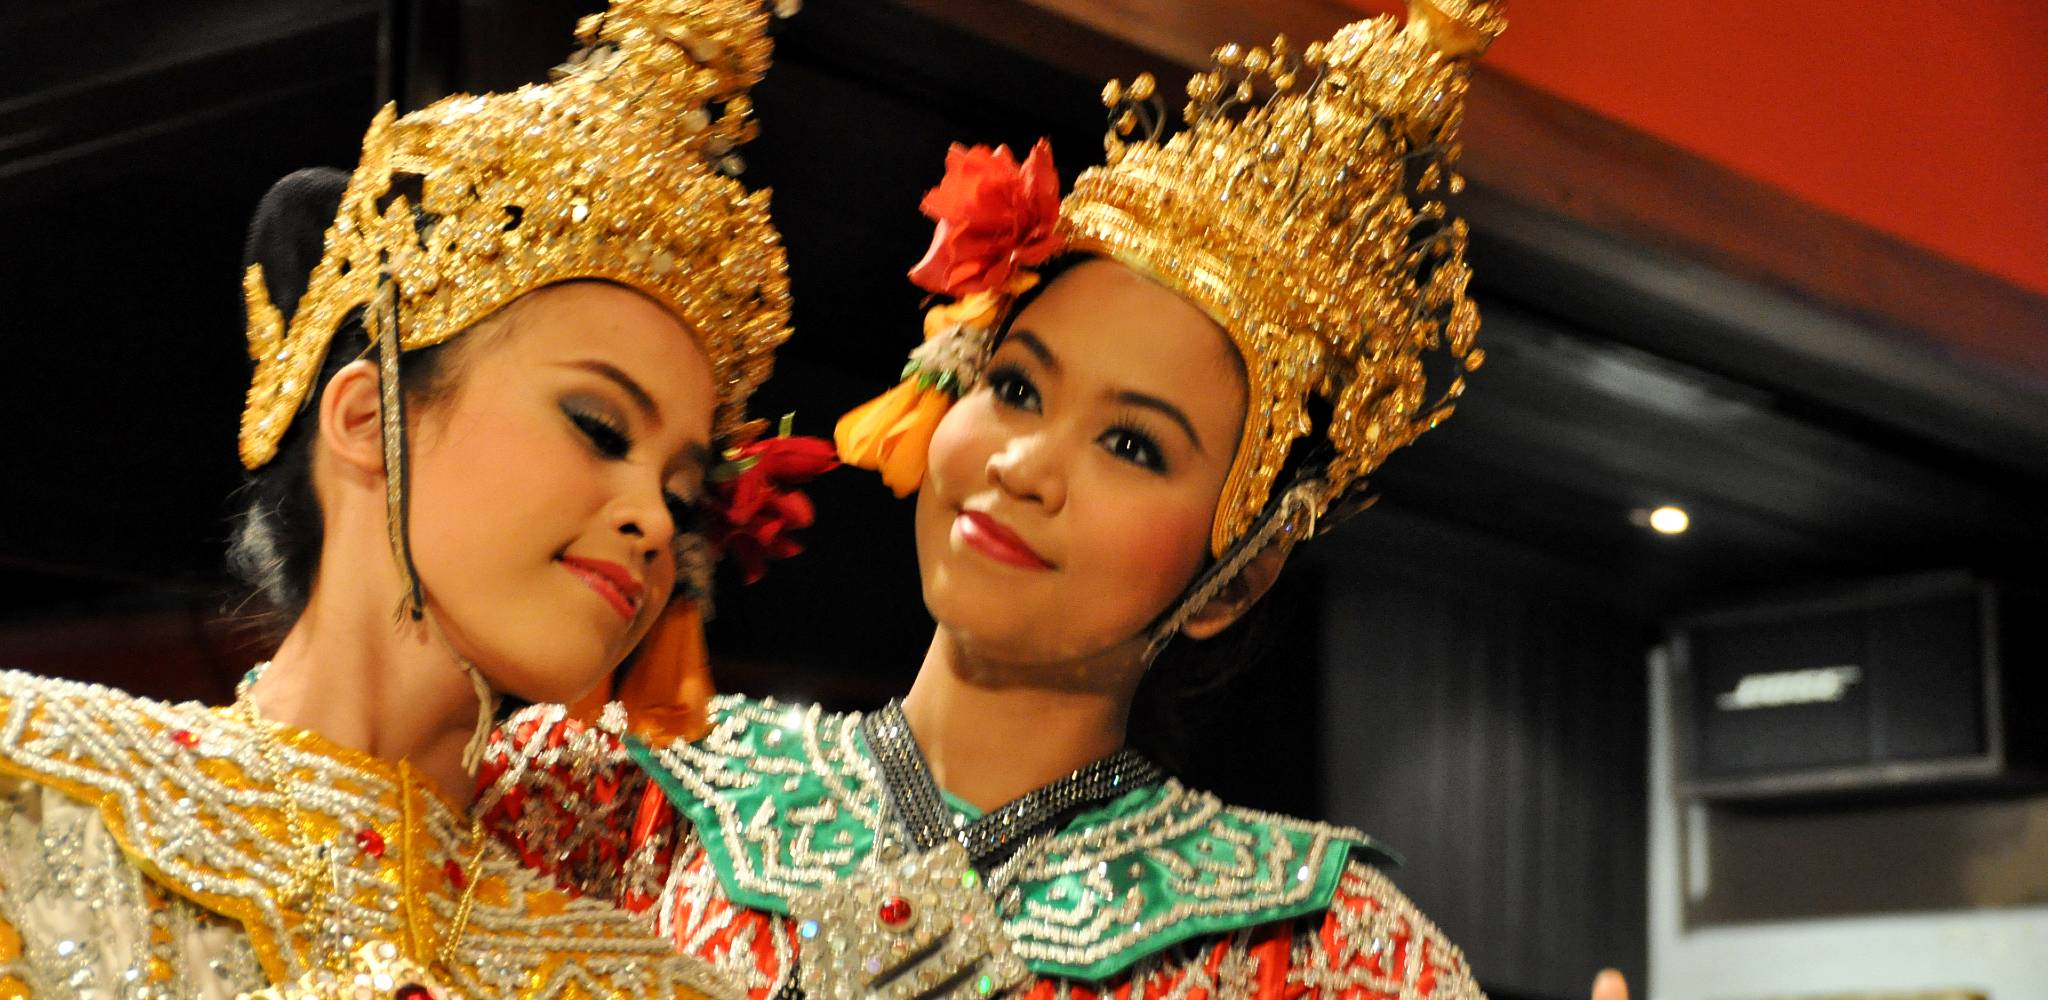 Thai dancers in traditional dress